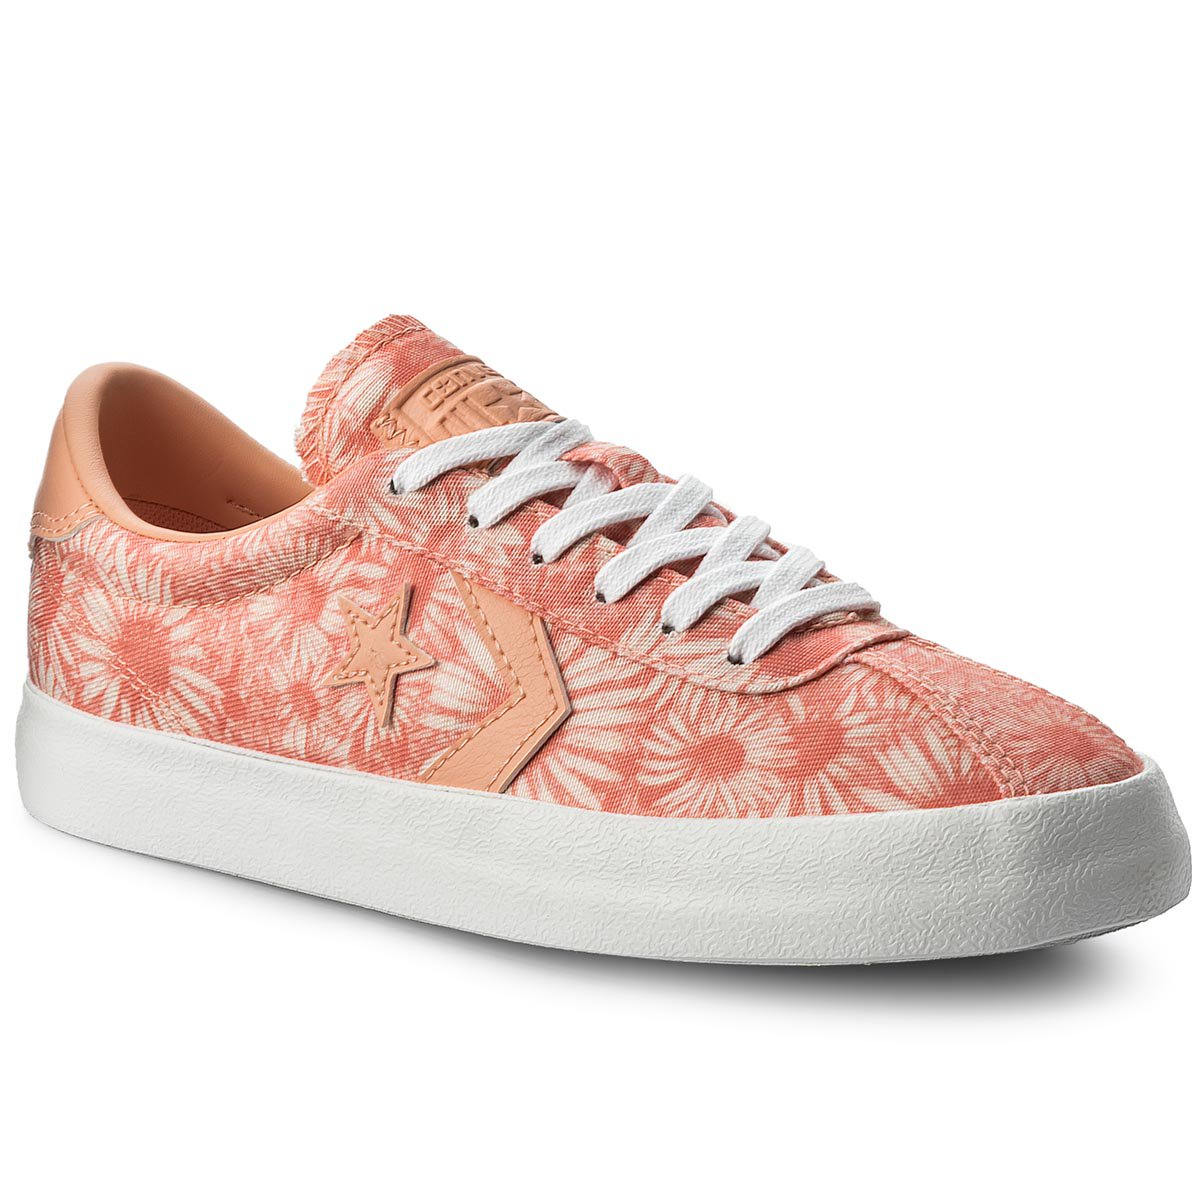 Sneakersy CONVERSE – Breakpoint Ox 159775C Pale Coral/Pale Coral/White